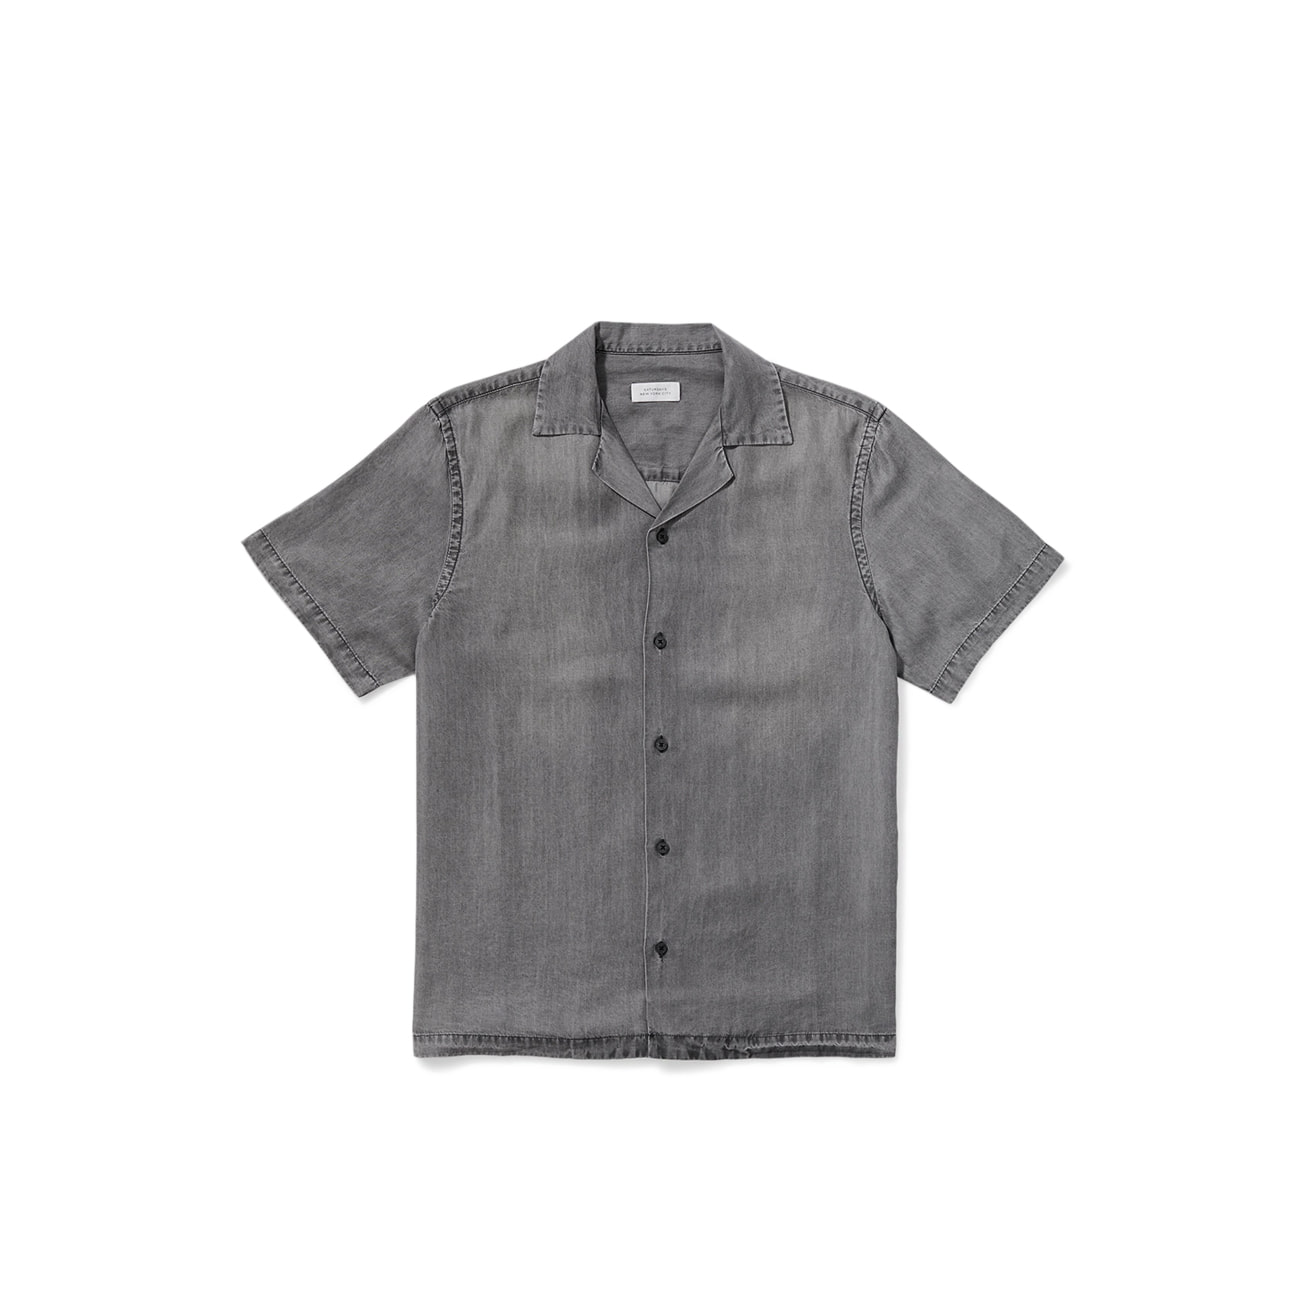 Canty Denim Tencel Short Sleeve Shirt